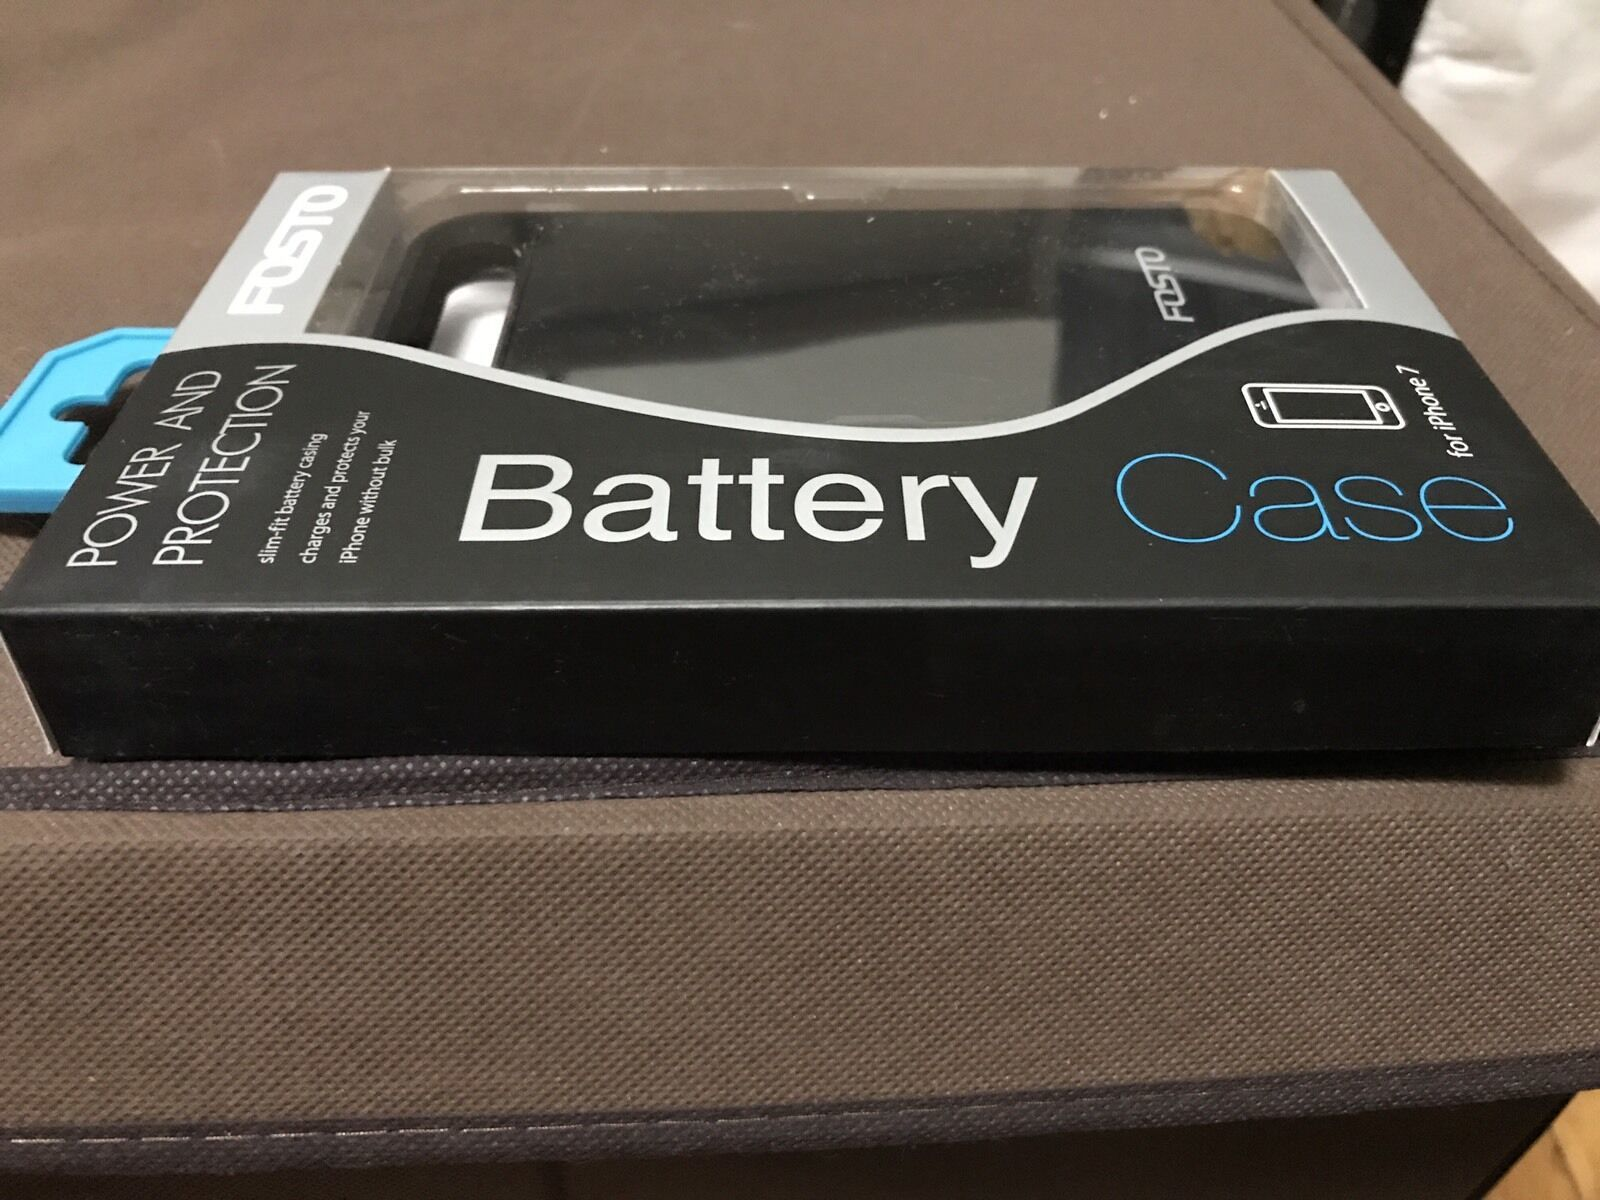 Iphone 7 Battery Case, FOSTO Ultra Slim Portable Charger Iphone 7 Charging Bank